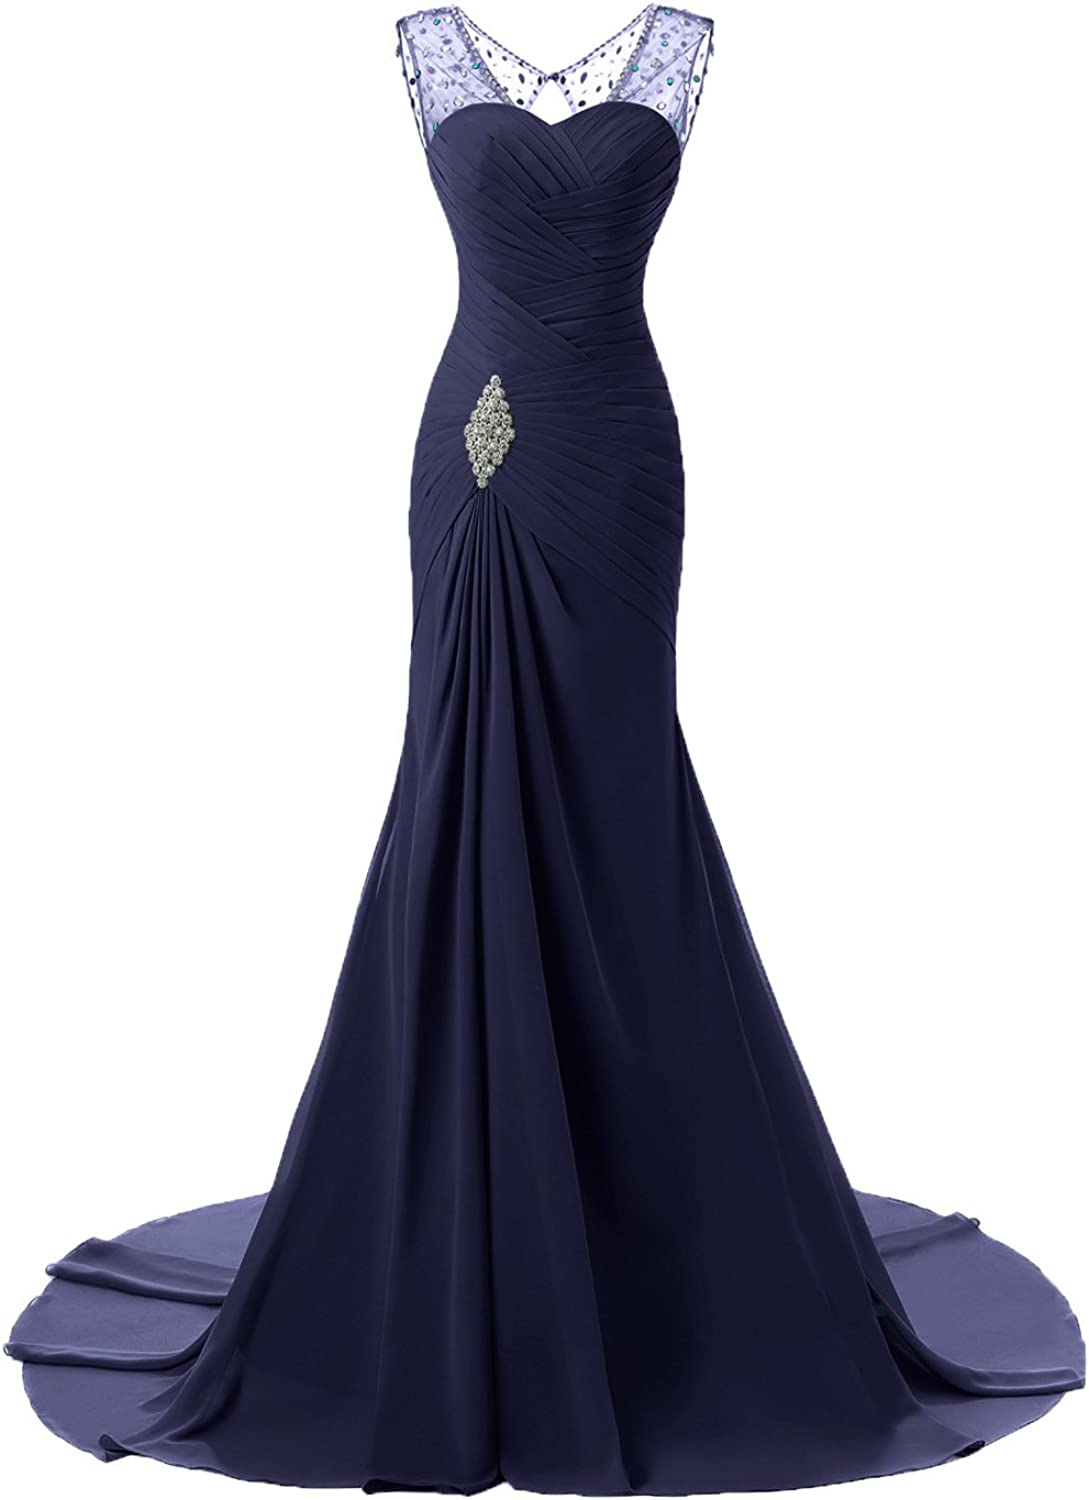 Women's Party Dress Mermaid Illusion Neck Floor Length Tulle Prom Formal Evening Dress with Beading HEdress (color   3)